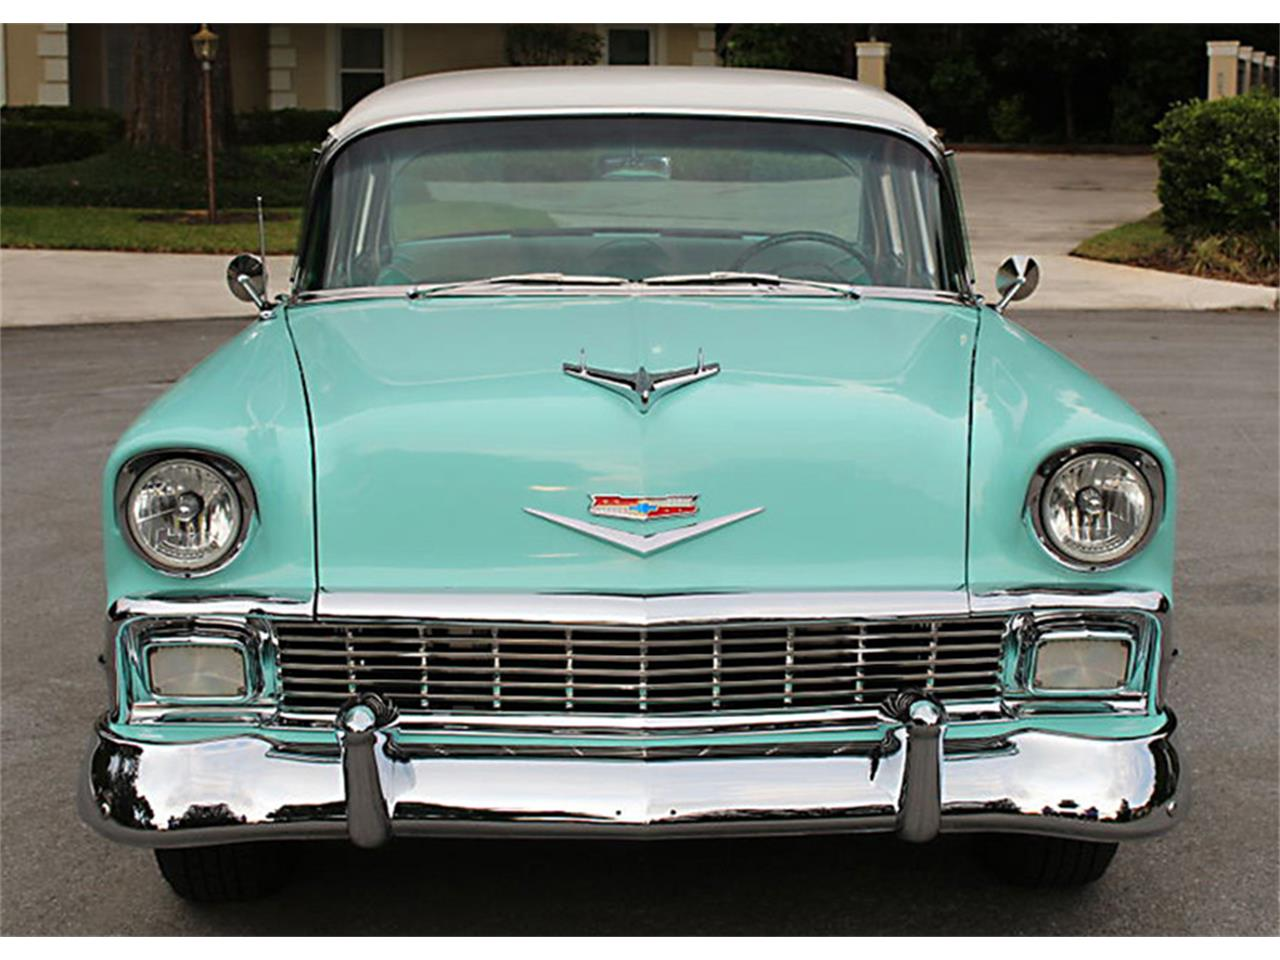 Large Picture of Classic '56 Chevrolet Bel Air located in Florida - $47,500.00 Offered by MJC Classic Cars - PUZW